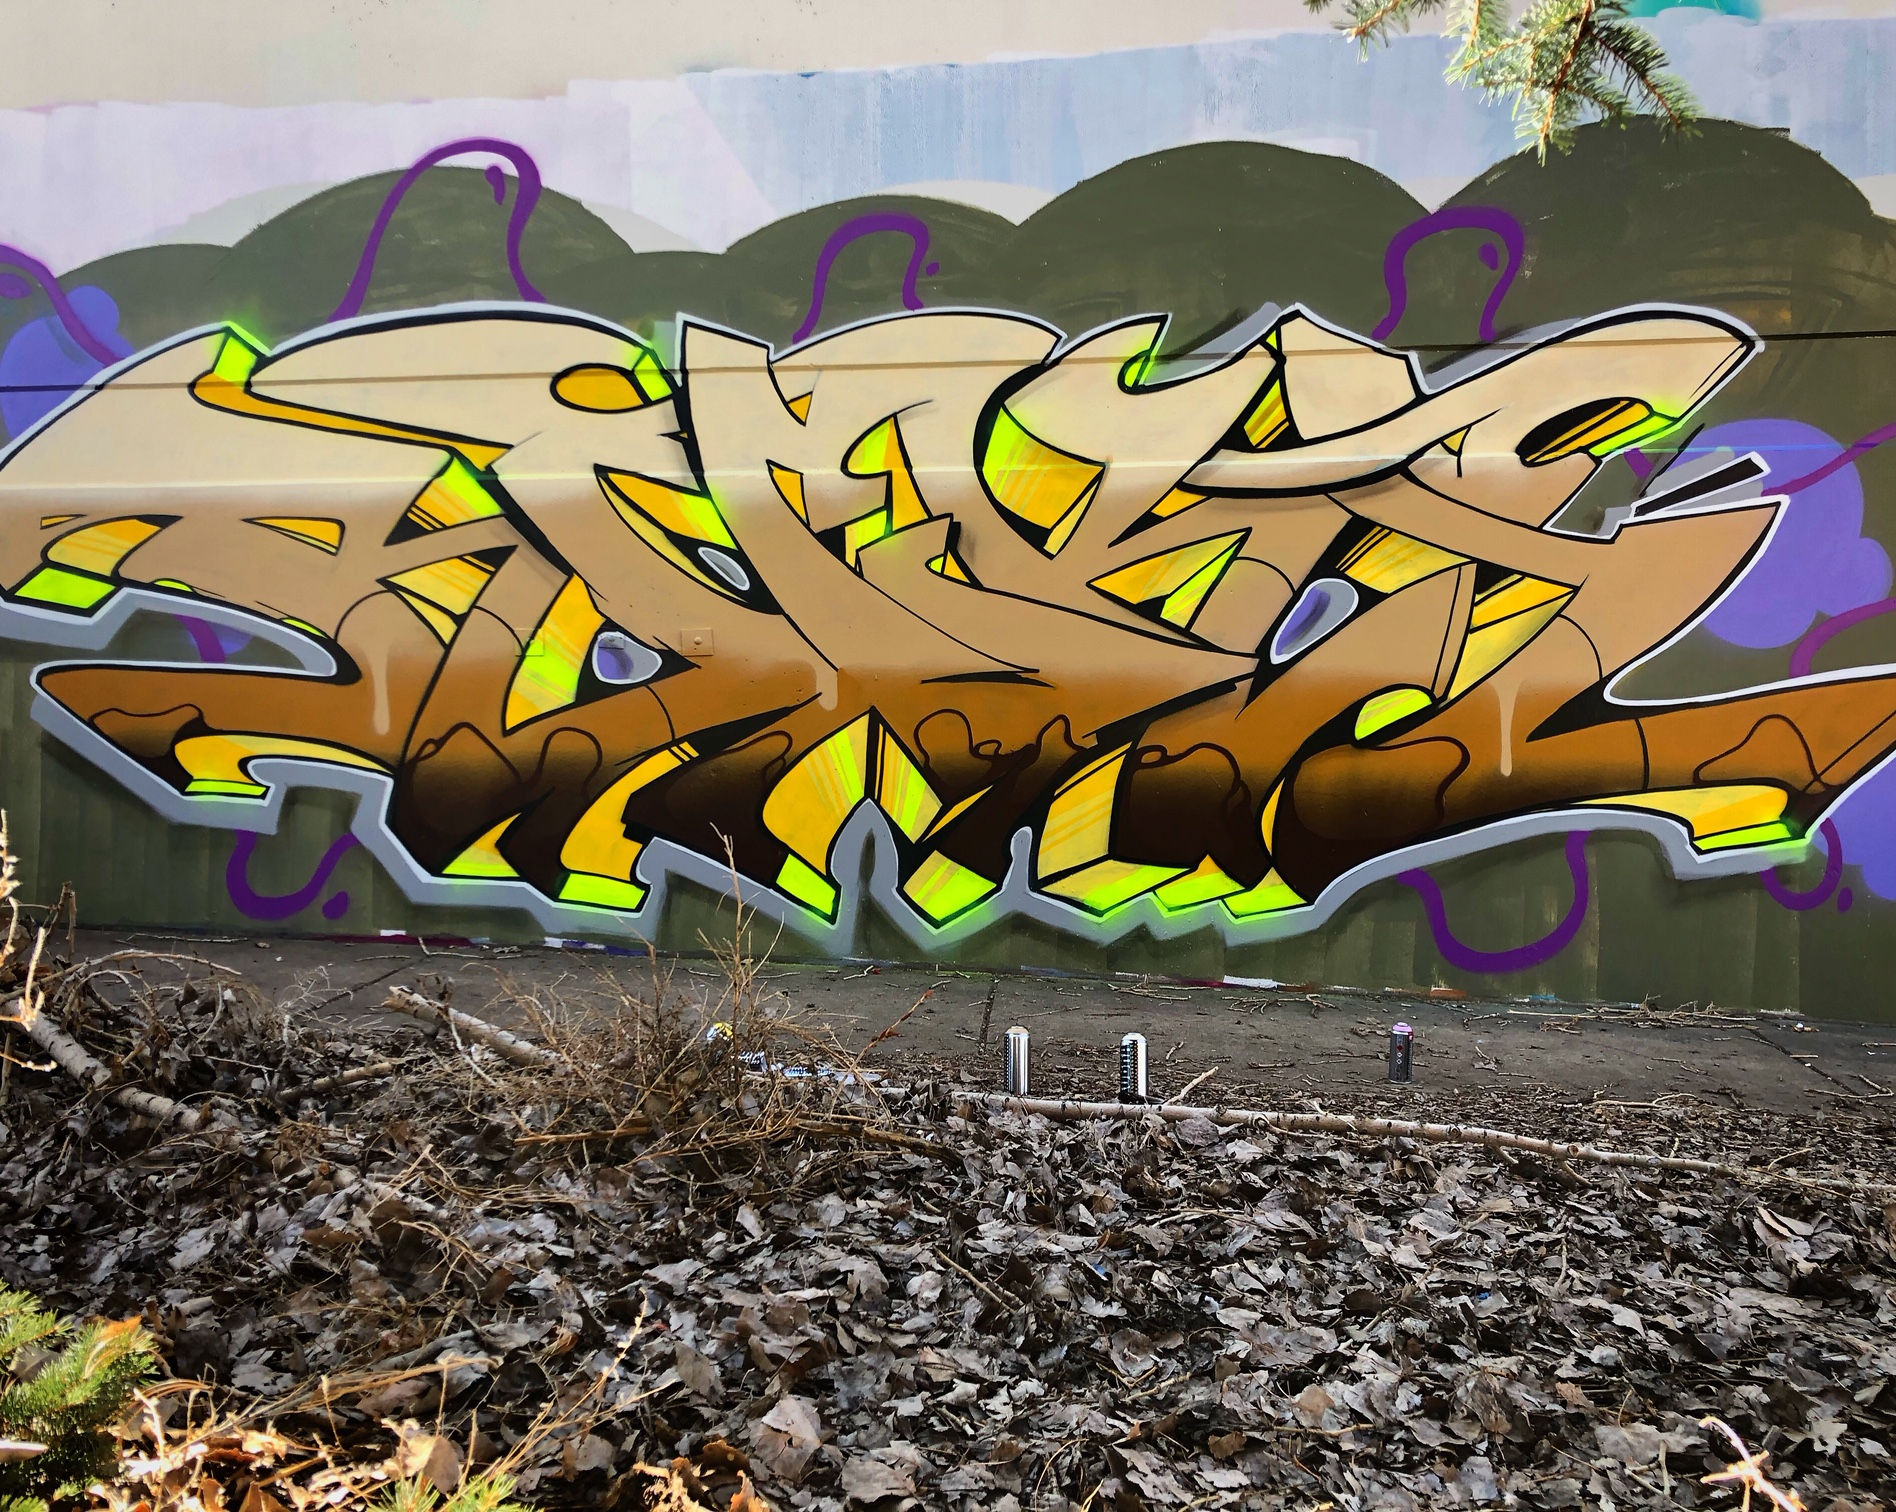 Regular practice of letters everyday is more beneficial then trying to come up with sick designs right out of your head when you are beginning graffiti